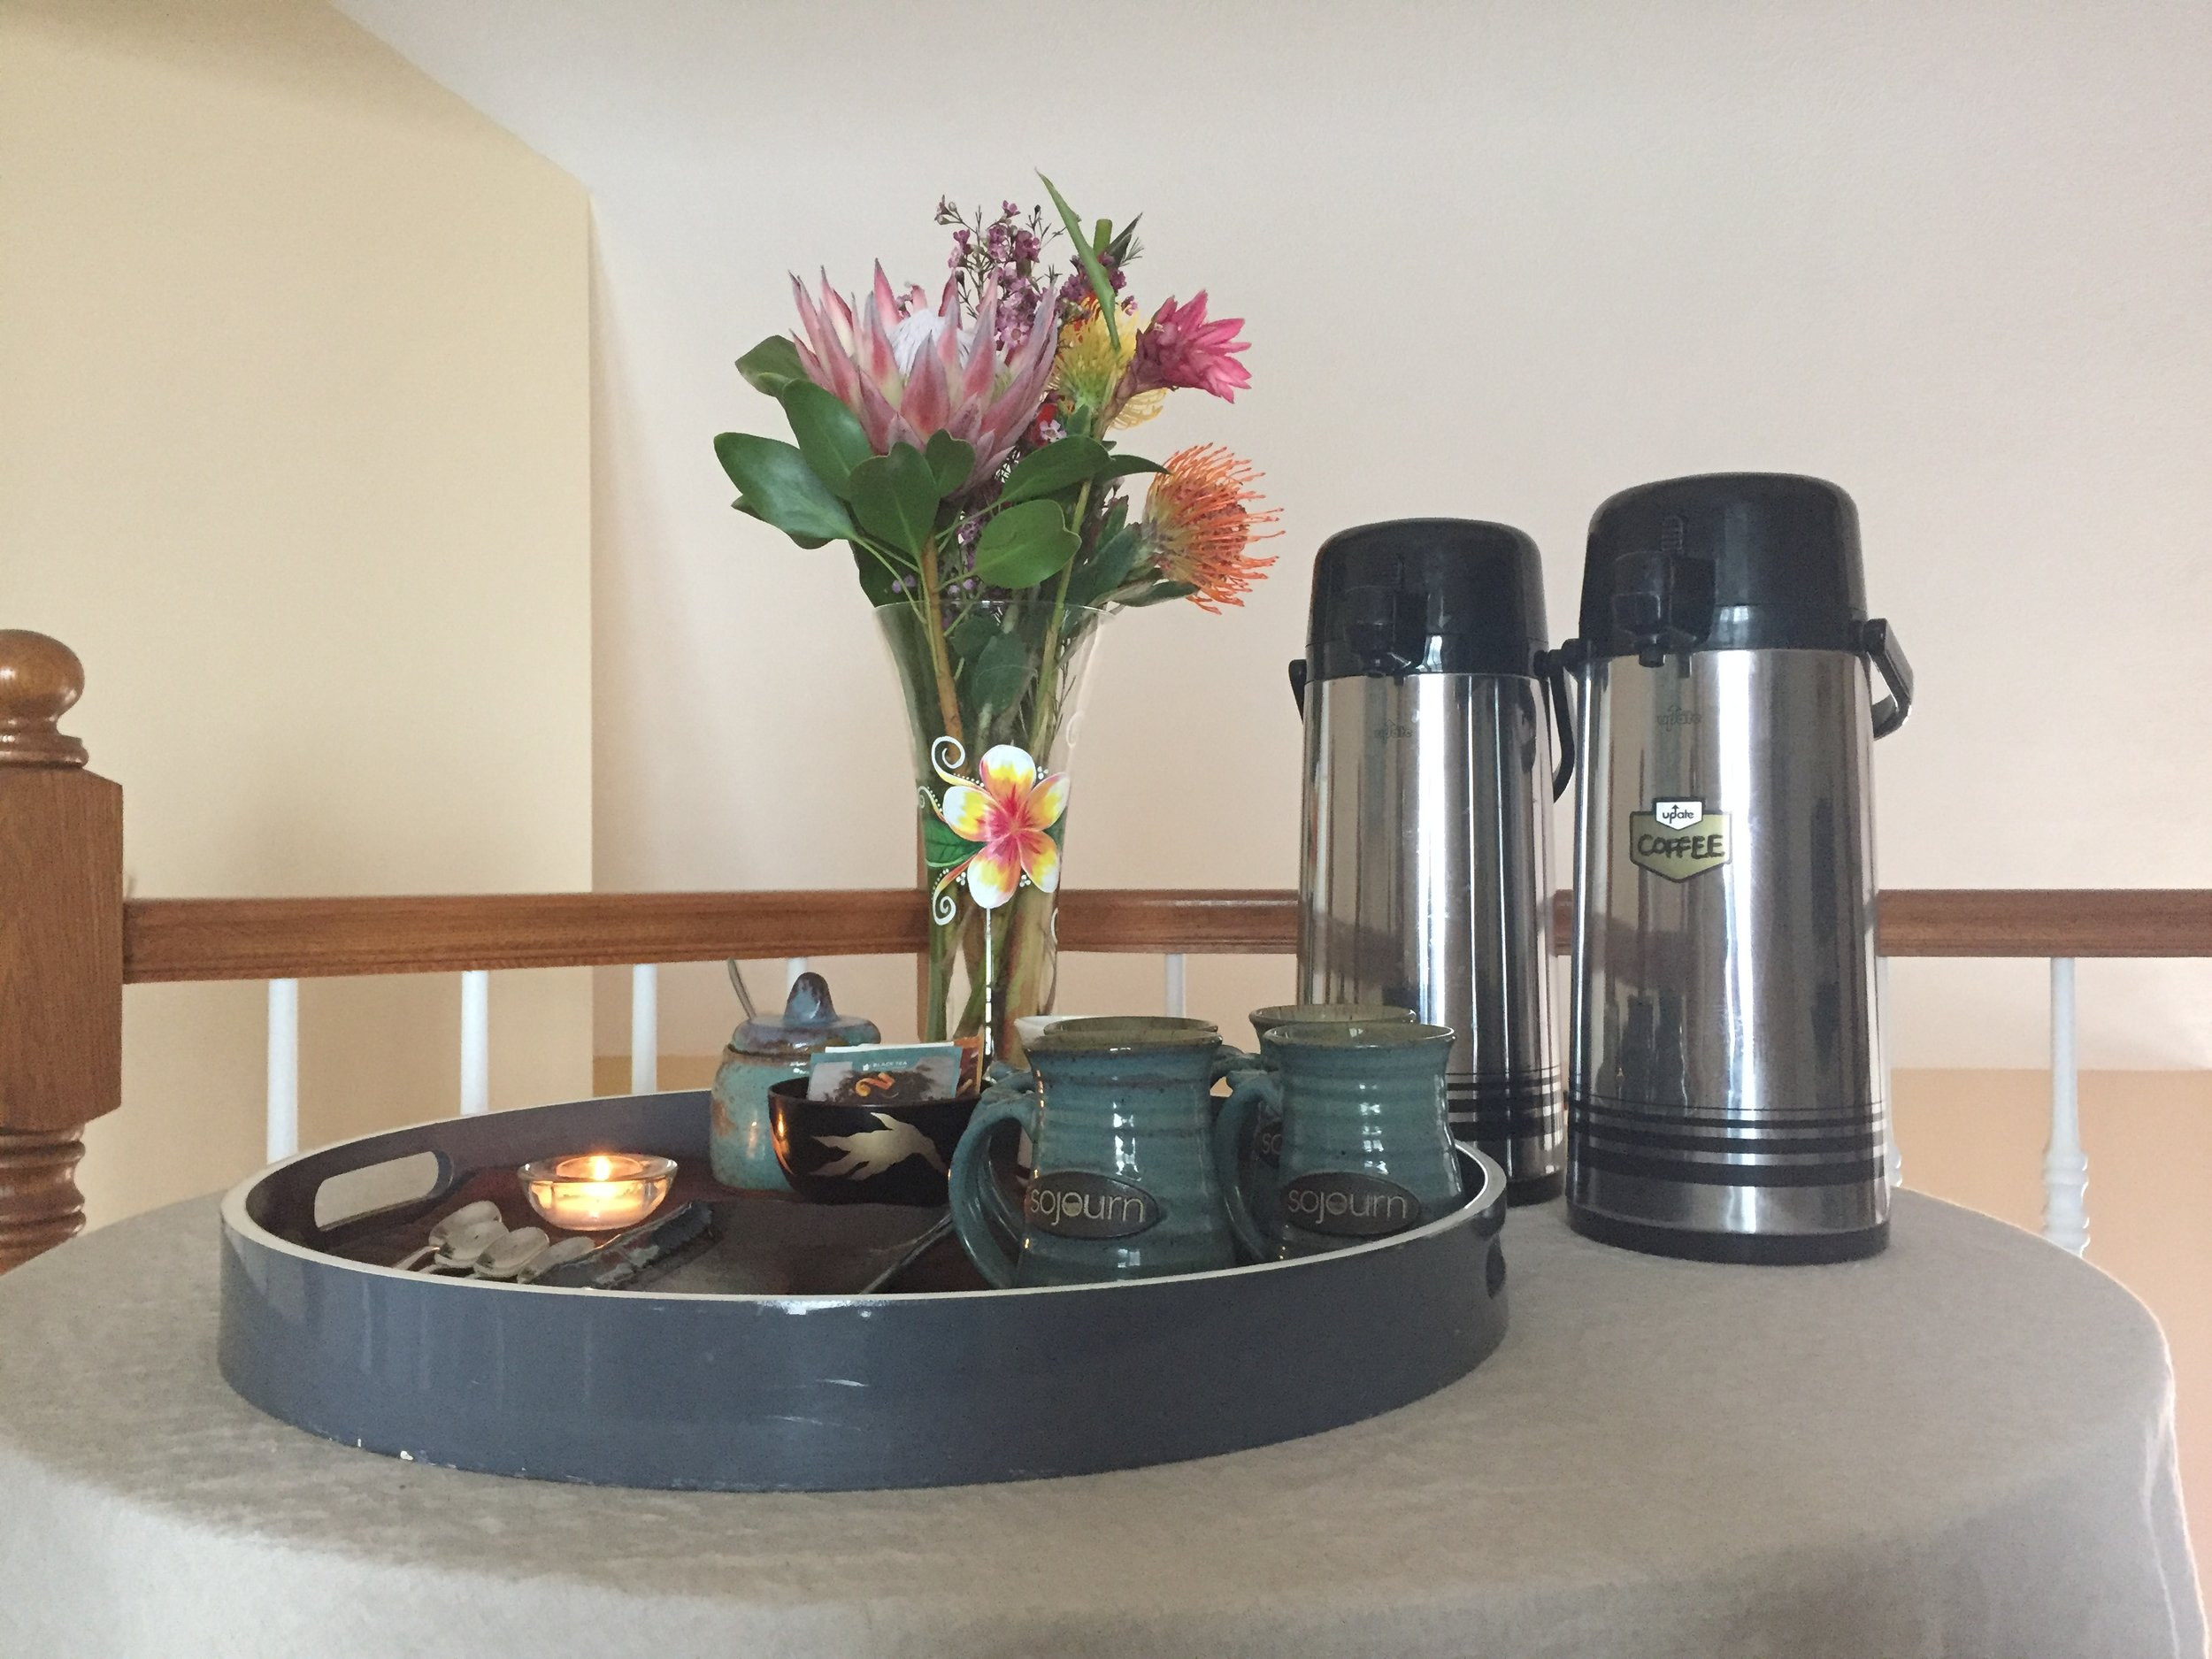 Coffee and tea service is available at 7:00 a.m.